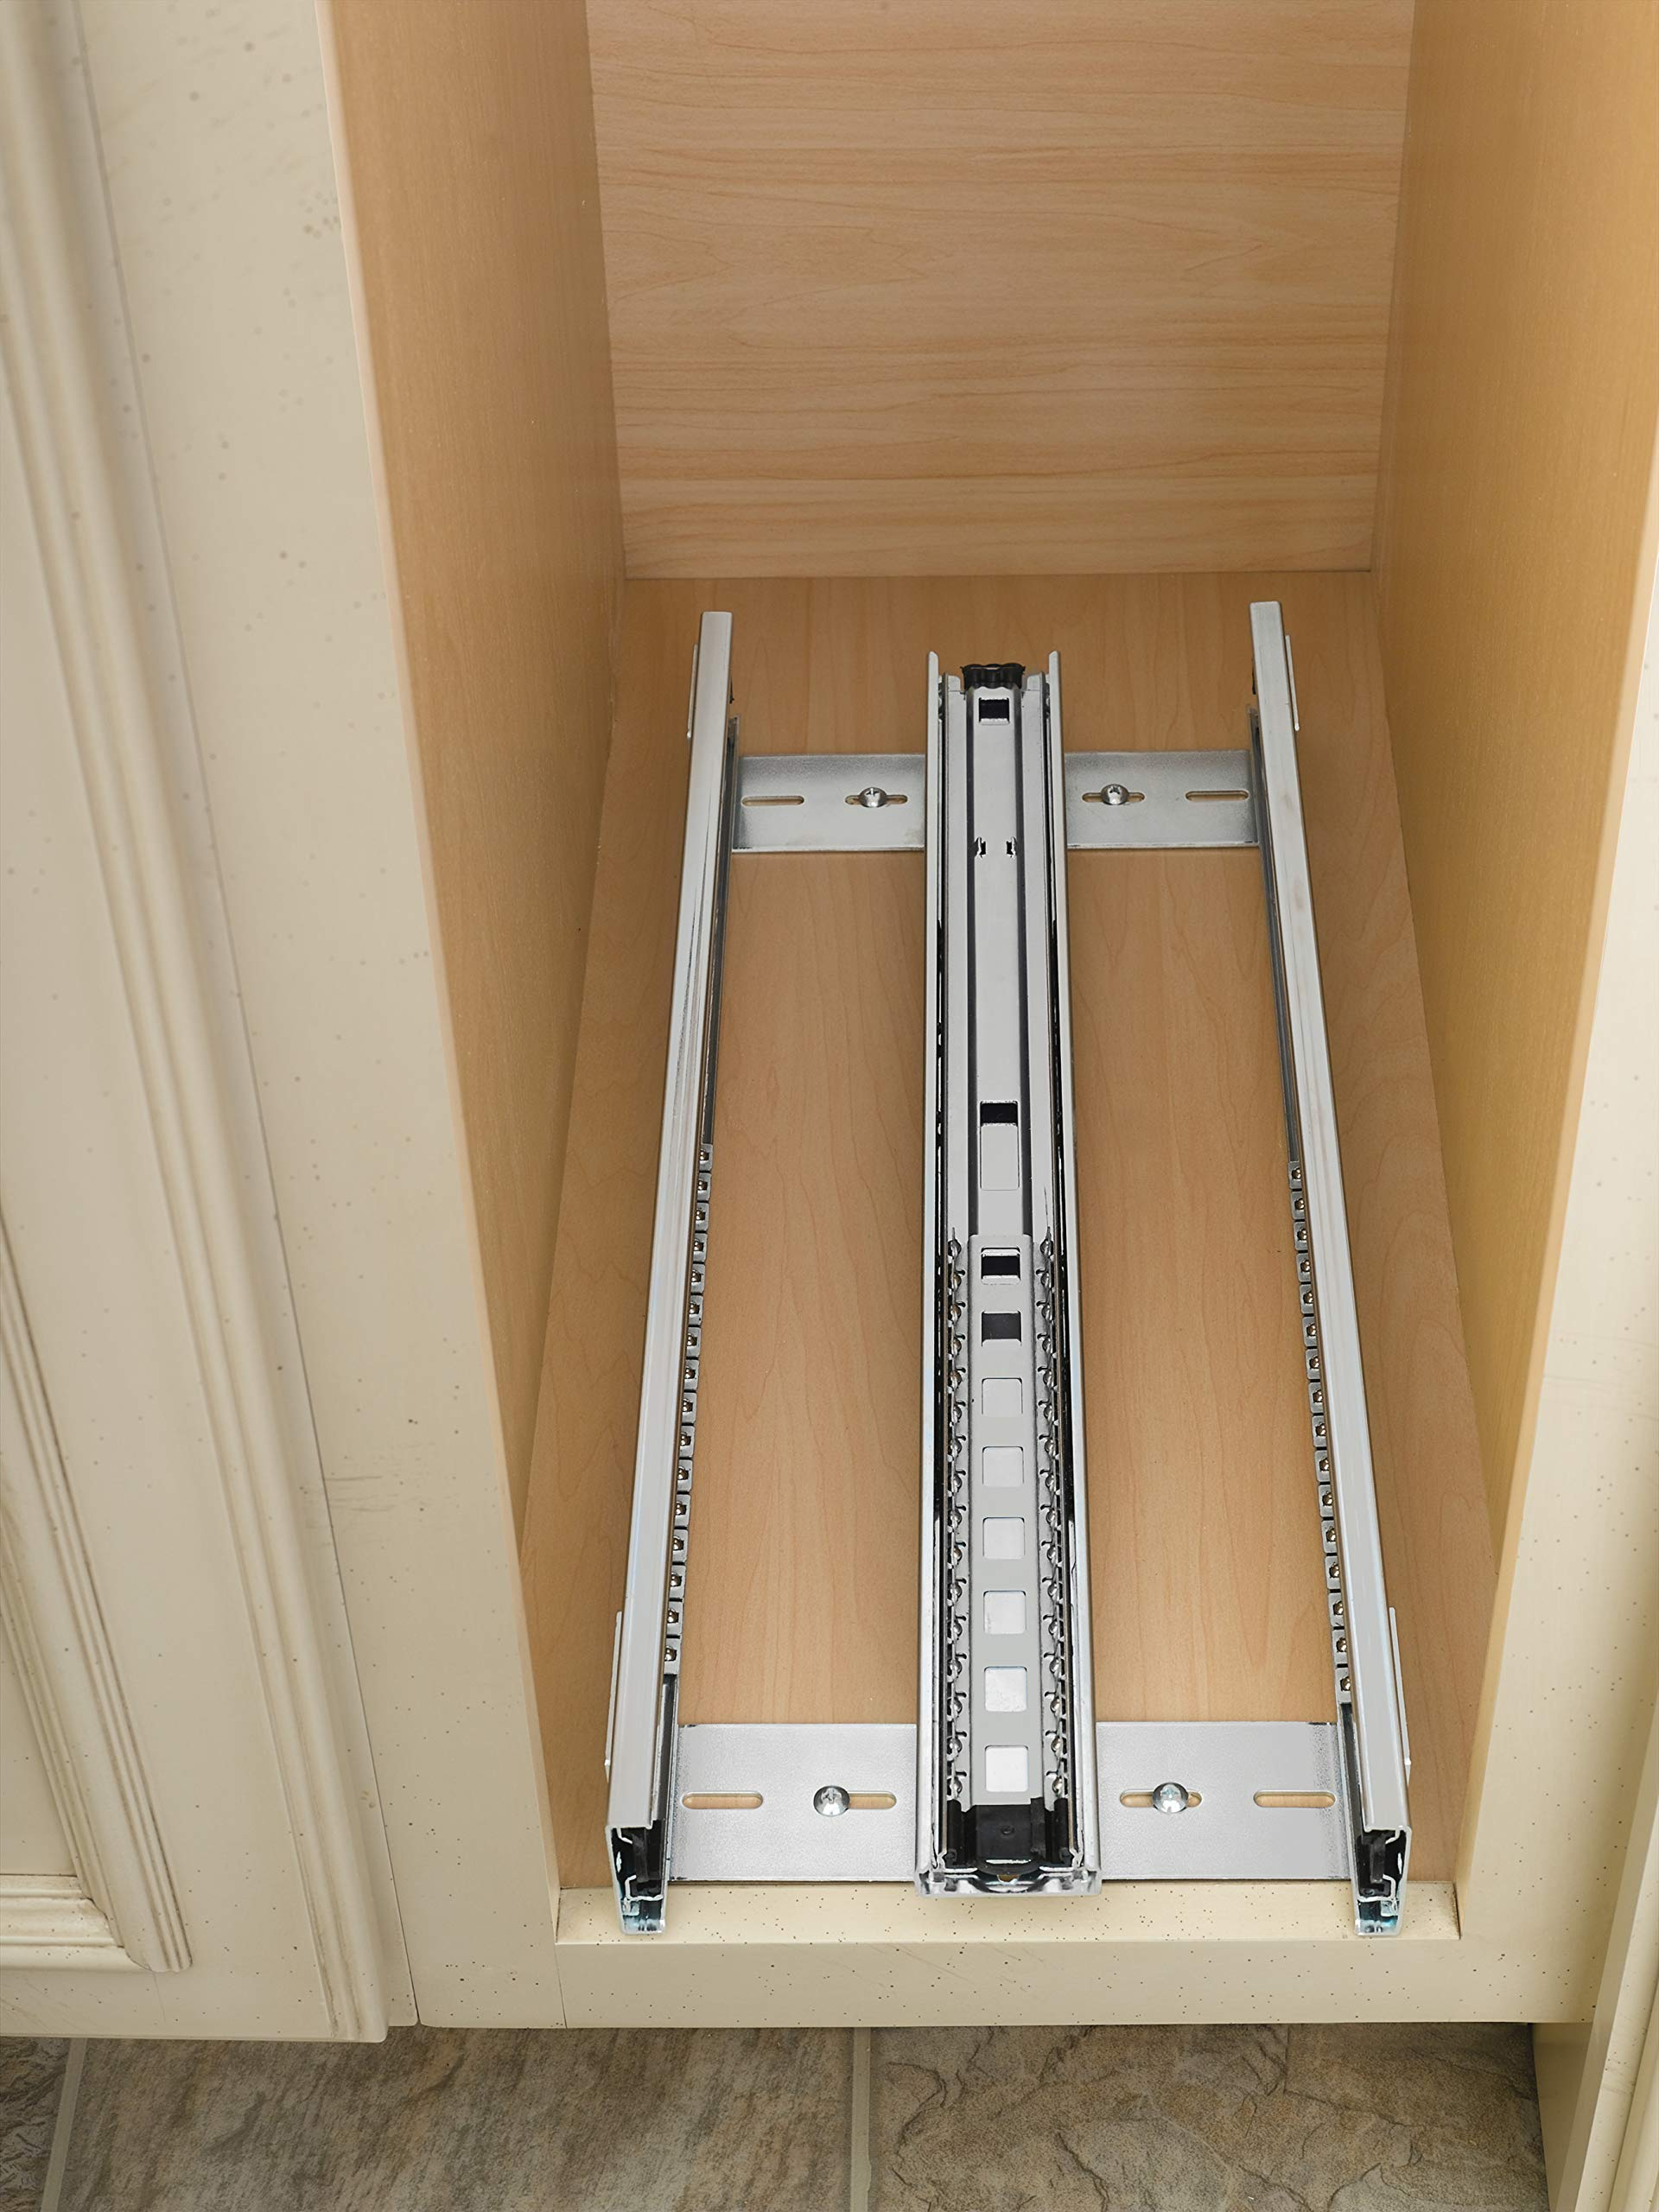 Rev-A-Shelf - 448-BC-5C - 5 in. Pull-Out Wood Base Cabinet Organizer by Rev-A-Shelf (Image #5)